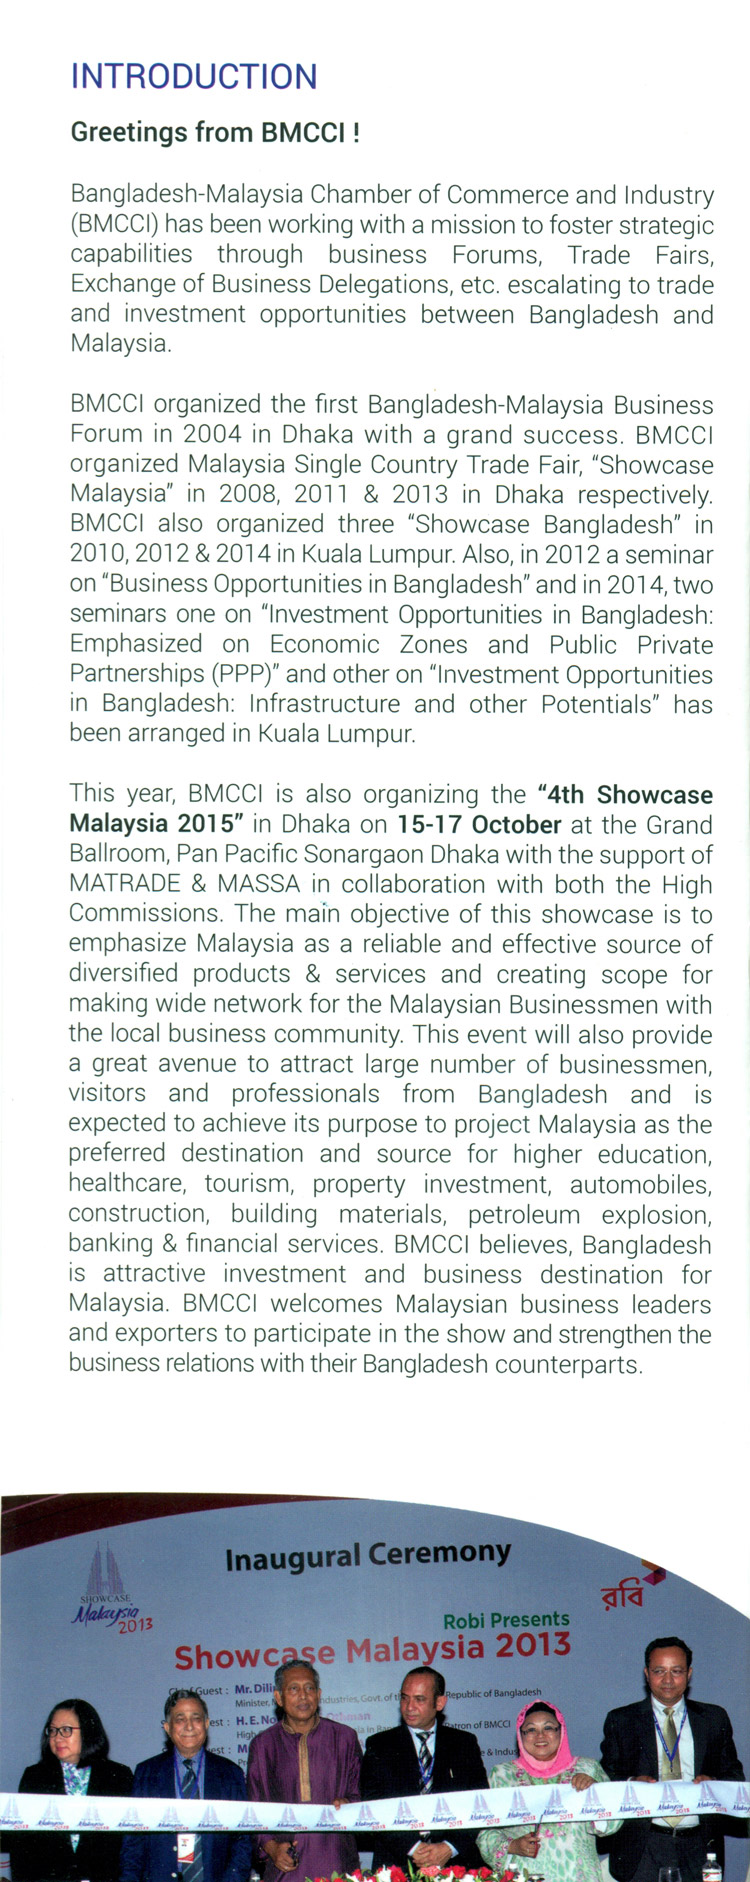 Showcase malaysia 2015 from 15 17 october 2015 dhaka bangladesh scan0002 scan0003 m4hsunfo